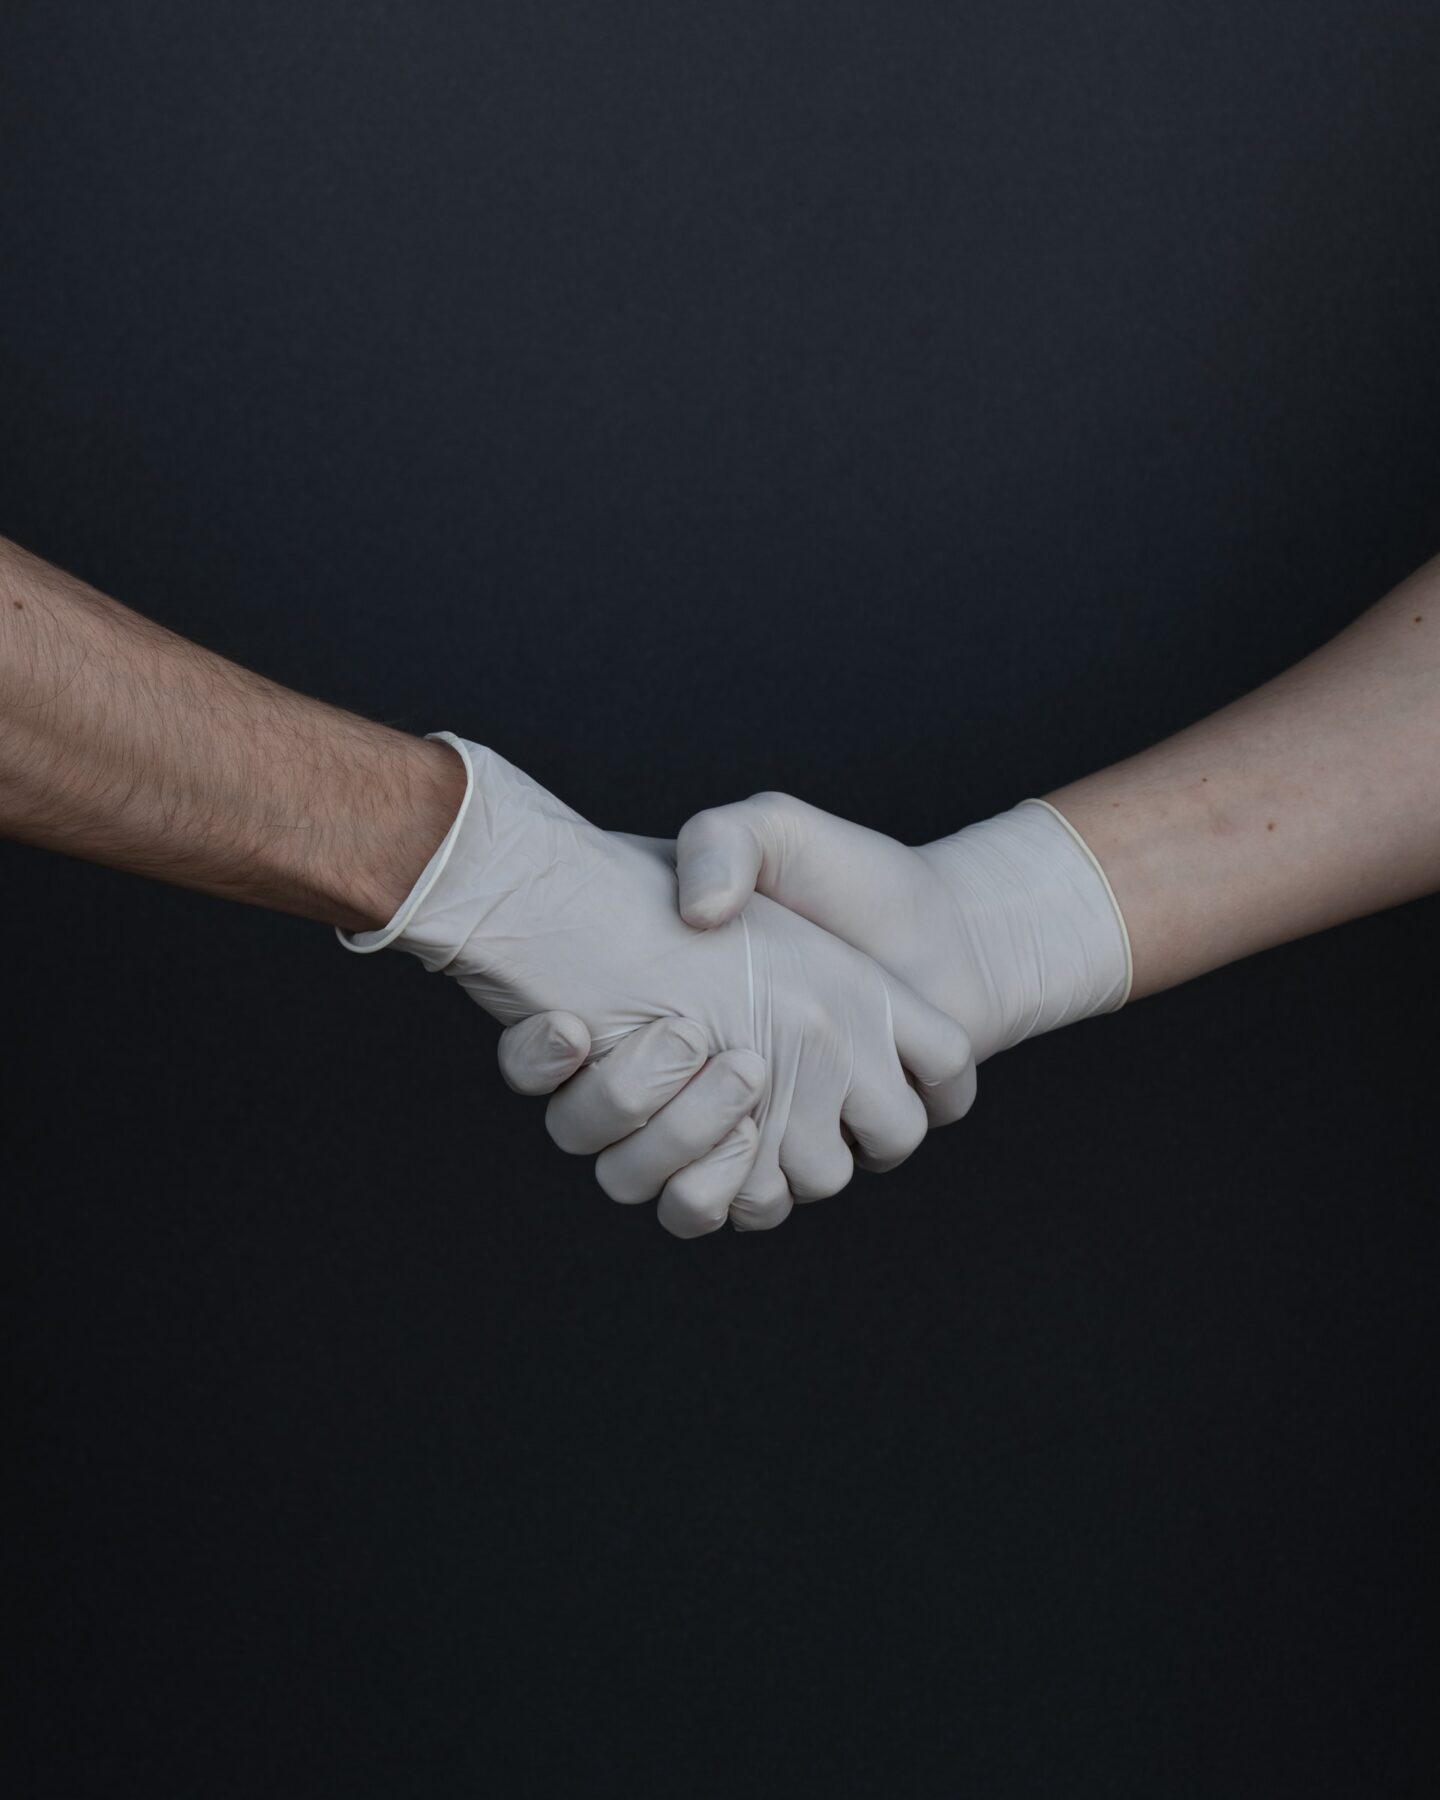 two hands shaking hands with medical gloves on